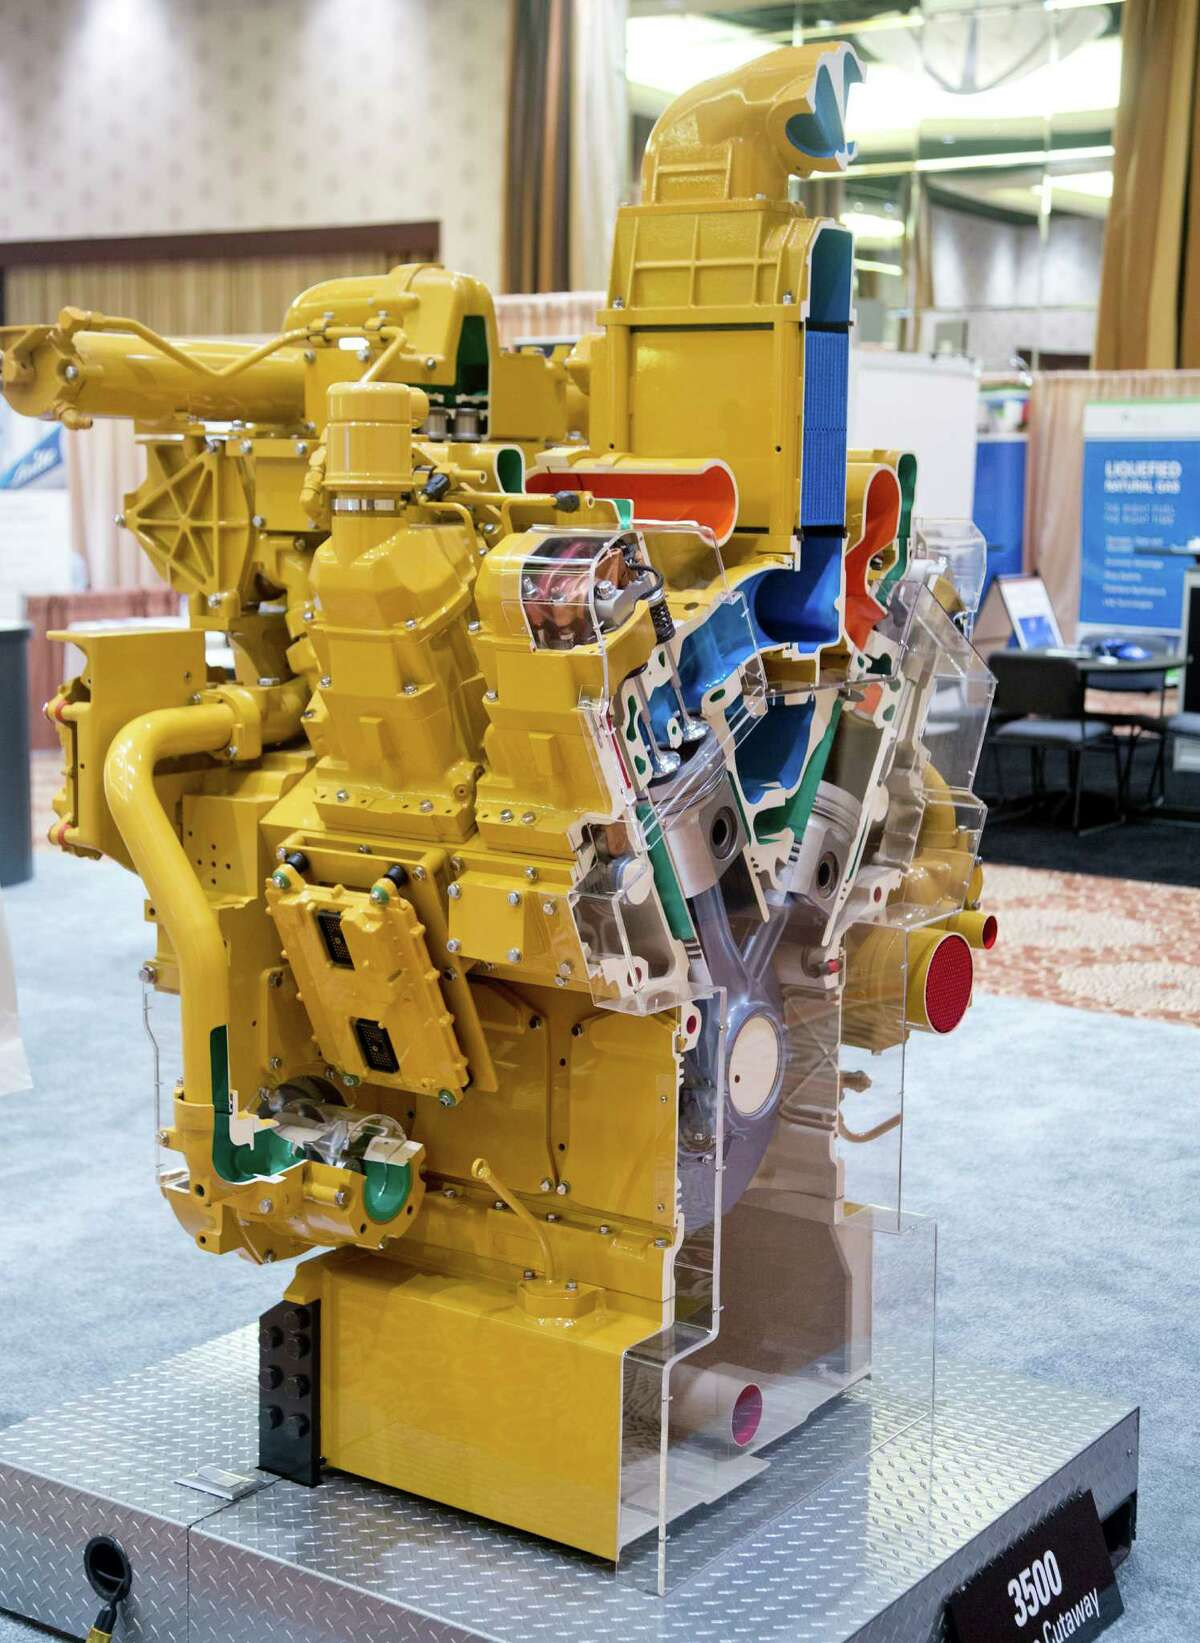 9/27/12: A Caterpillar 3500 engine cutaway display at the Natural Gas for High Horsepower Applications Summit 2012 at the Royal Sonesta Hotel in Houston, Texas.